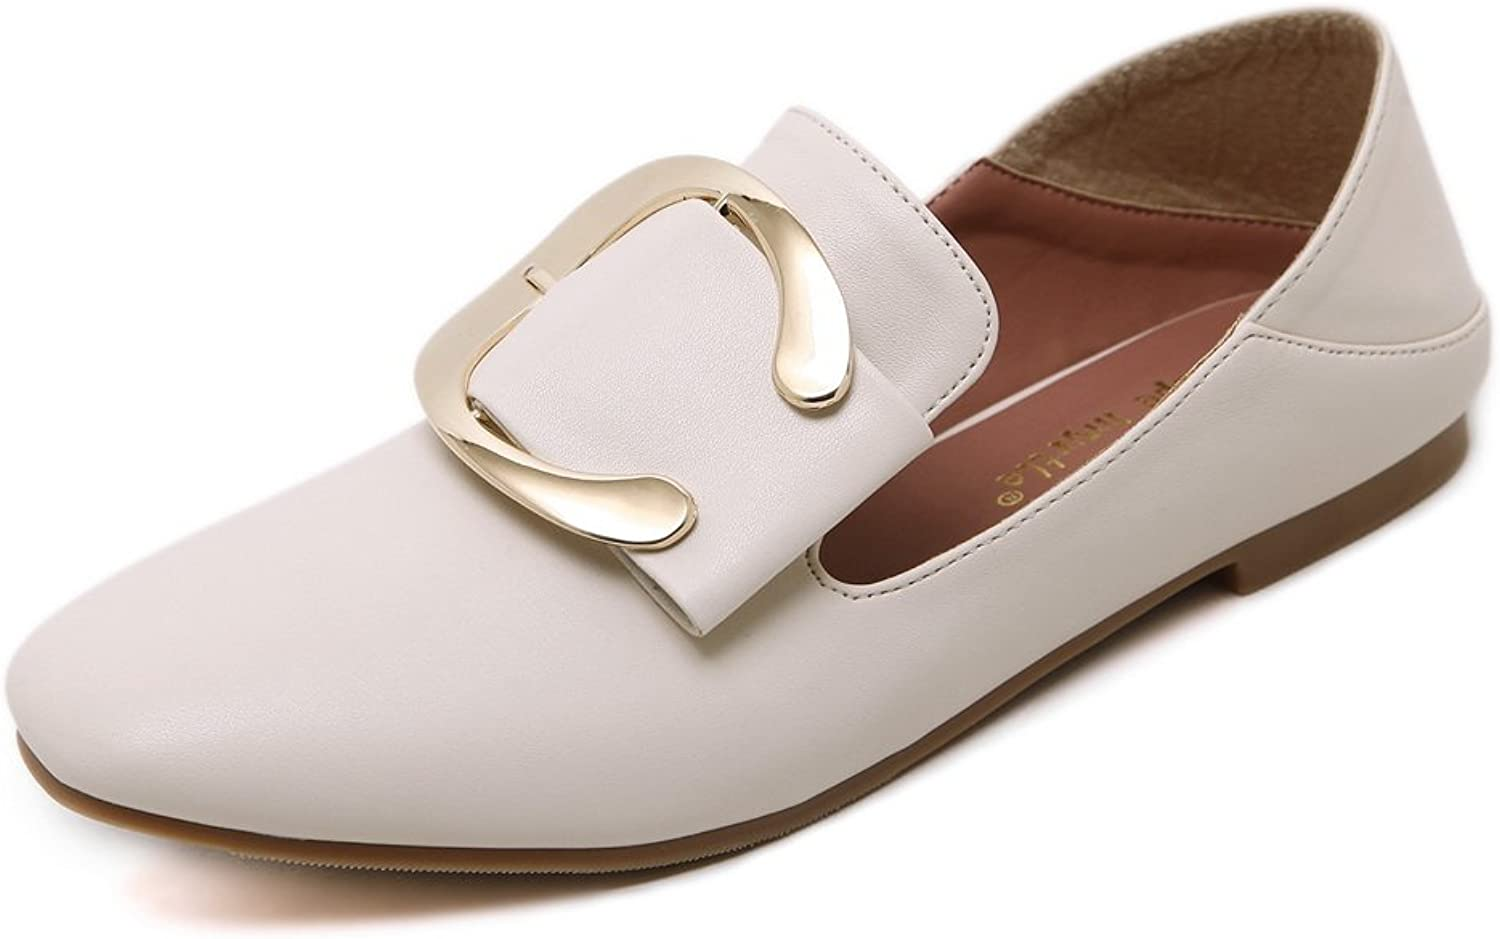 AdeeSu Womens Square-Toe Buckle Low-Cut Uppers Microfiber Flats shoes